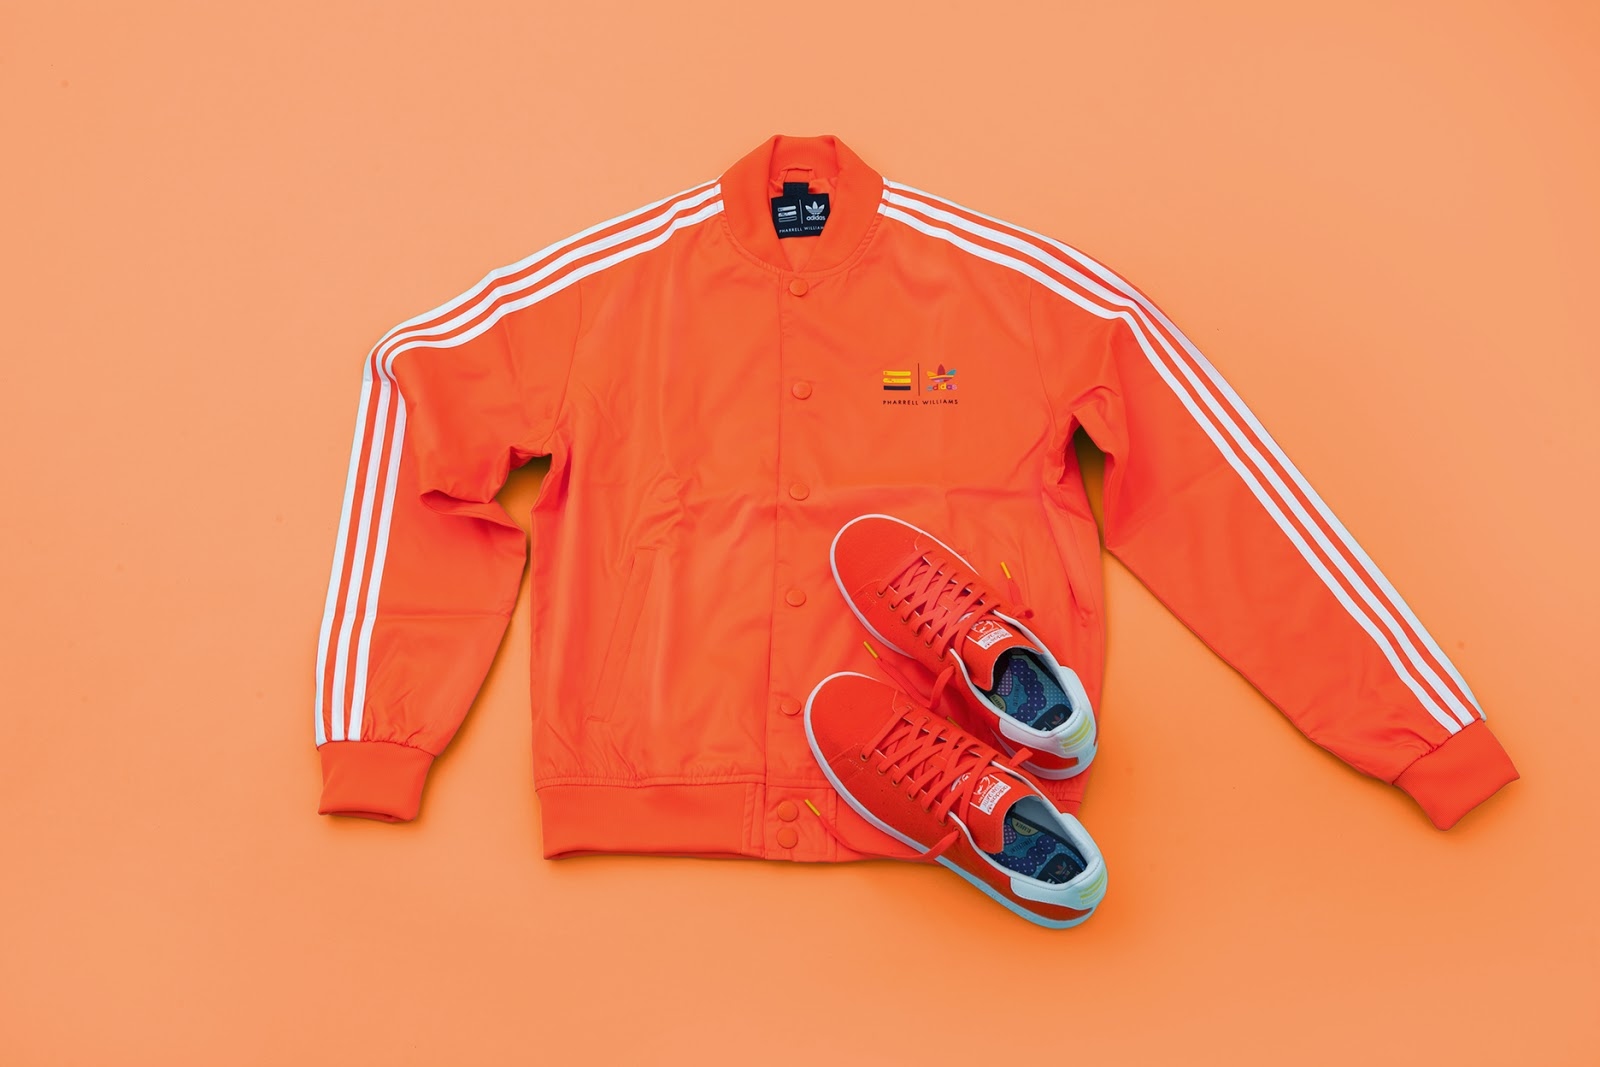 Adidas originals arauco maipu for Adidas originals unicenter